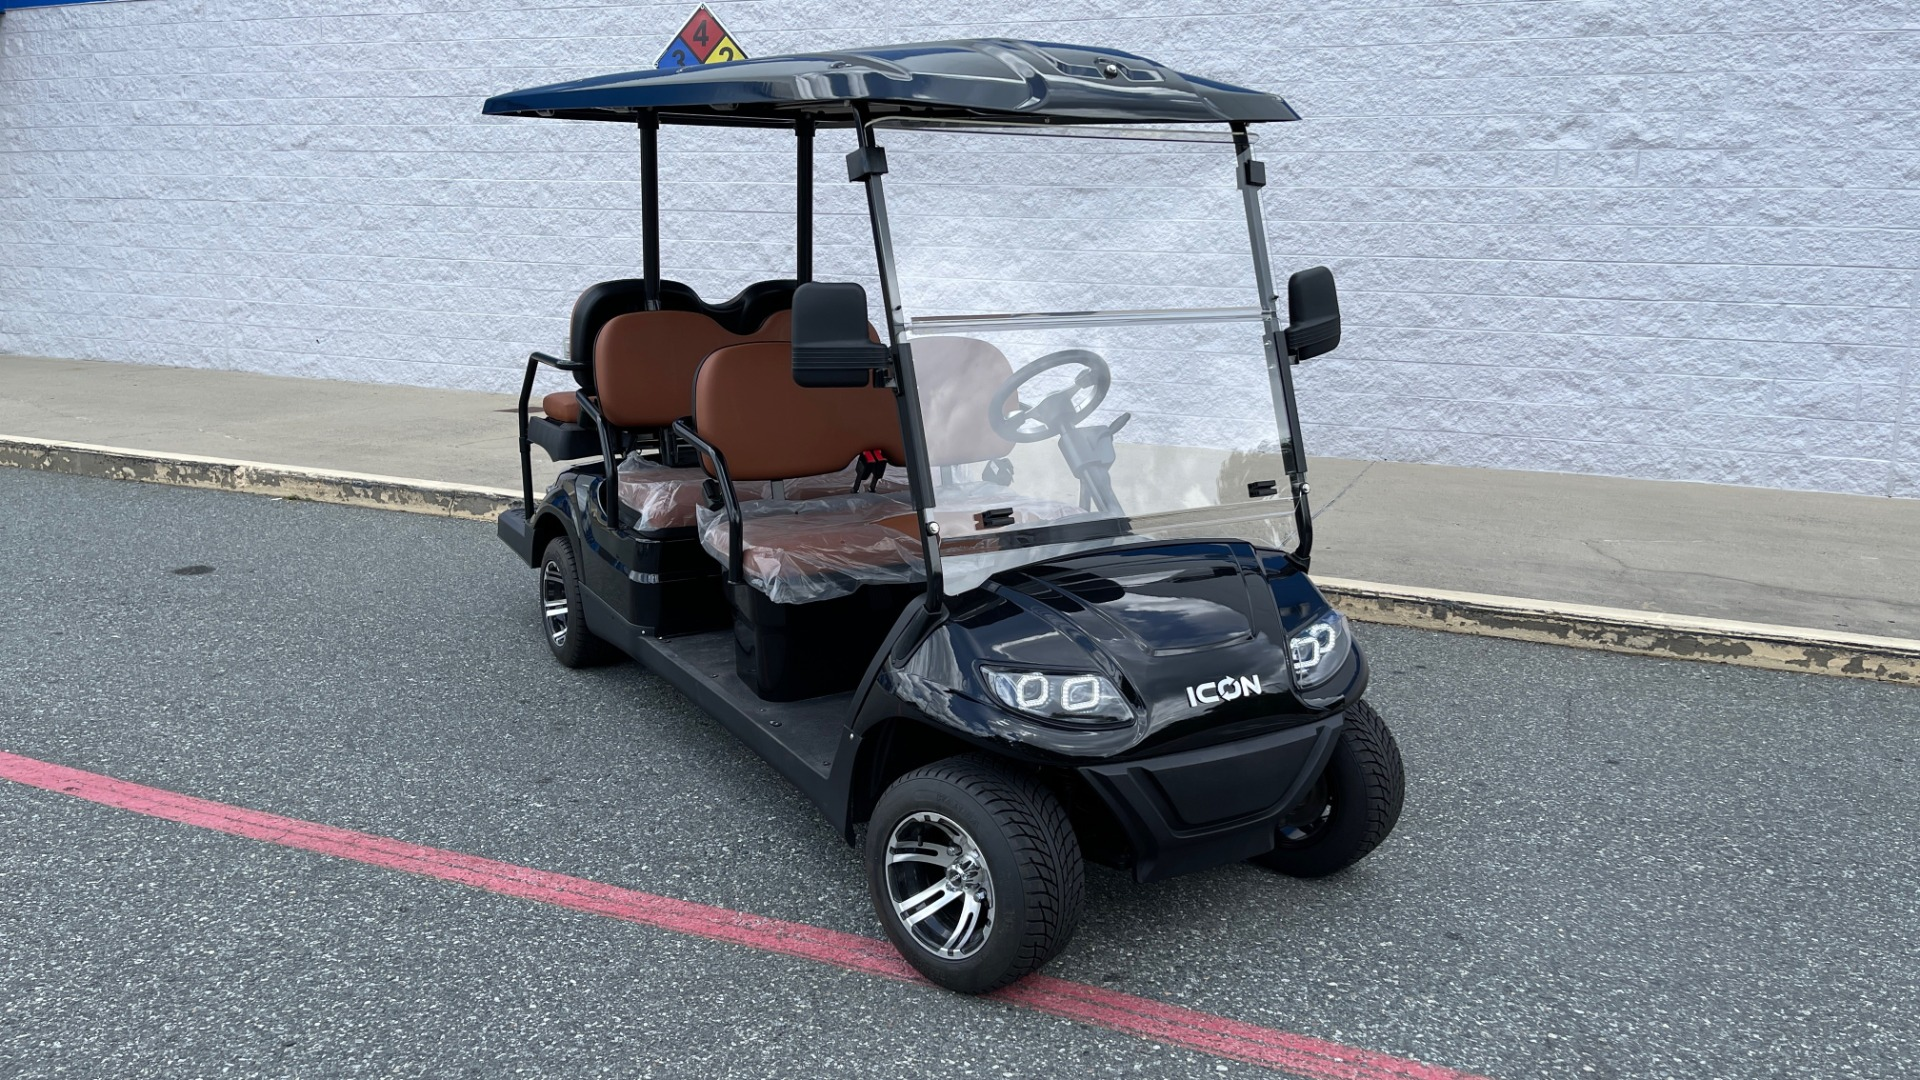 Used 2021 ICON i60 ELECTRIC CAR / 6-PASSENGER GOLF CART / 25MPH / NEW / 1-MILE for sale $10,999 at Formula Imports in Charlotte NC 28227 4